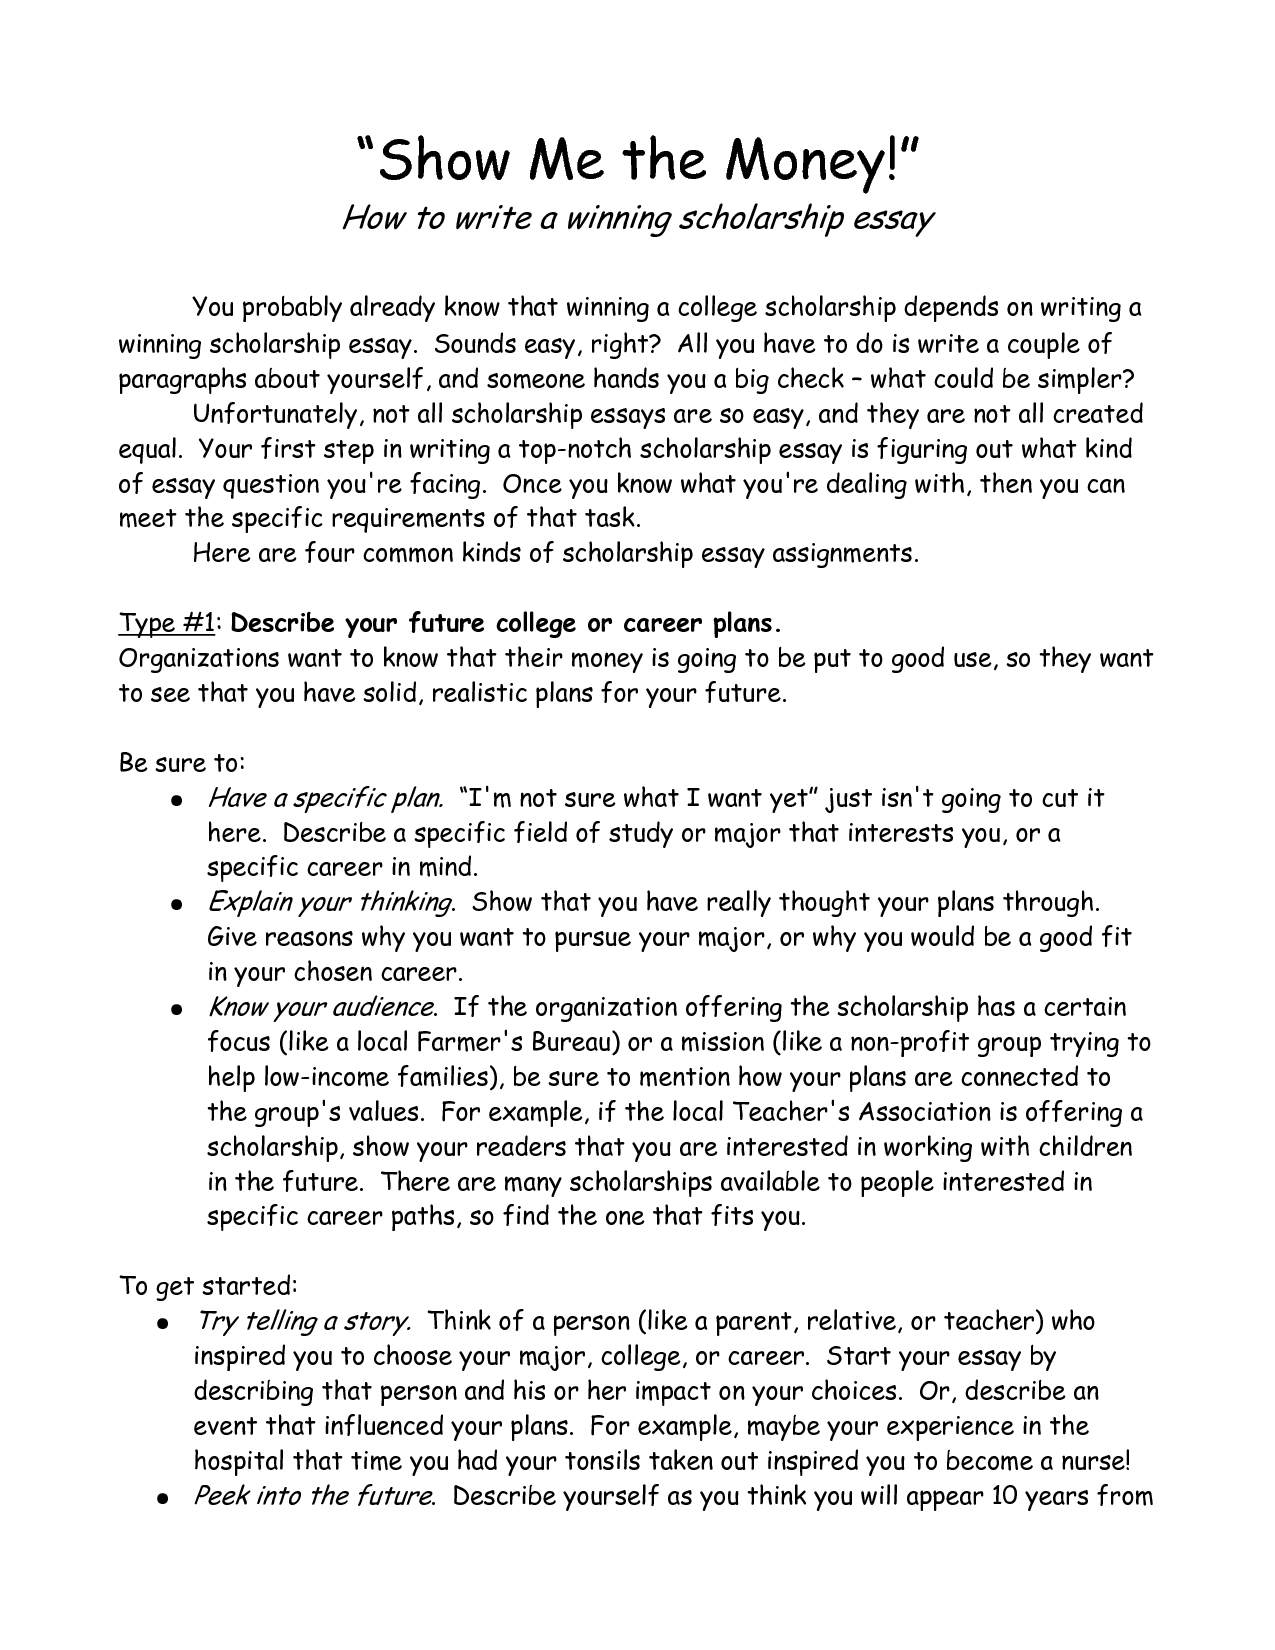 College Scholarship Essay Format | World Of Example with regard to College Scholarship Essay Format 21031